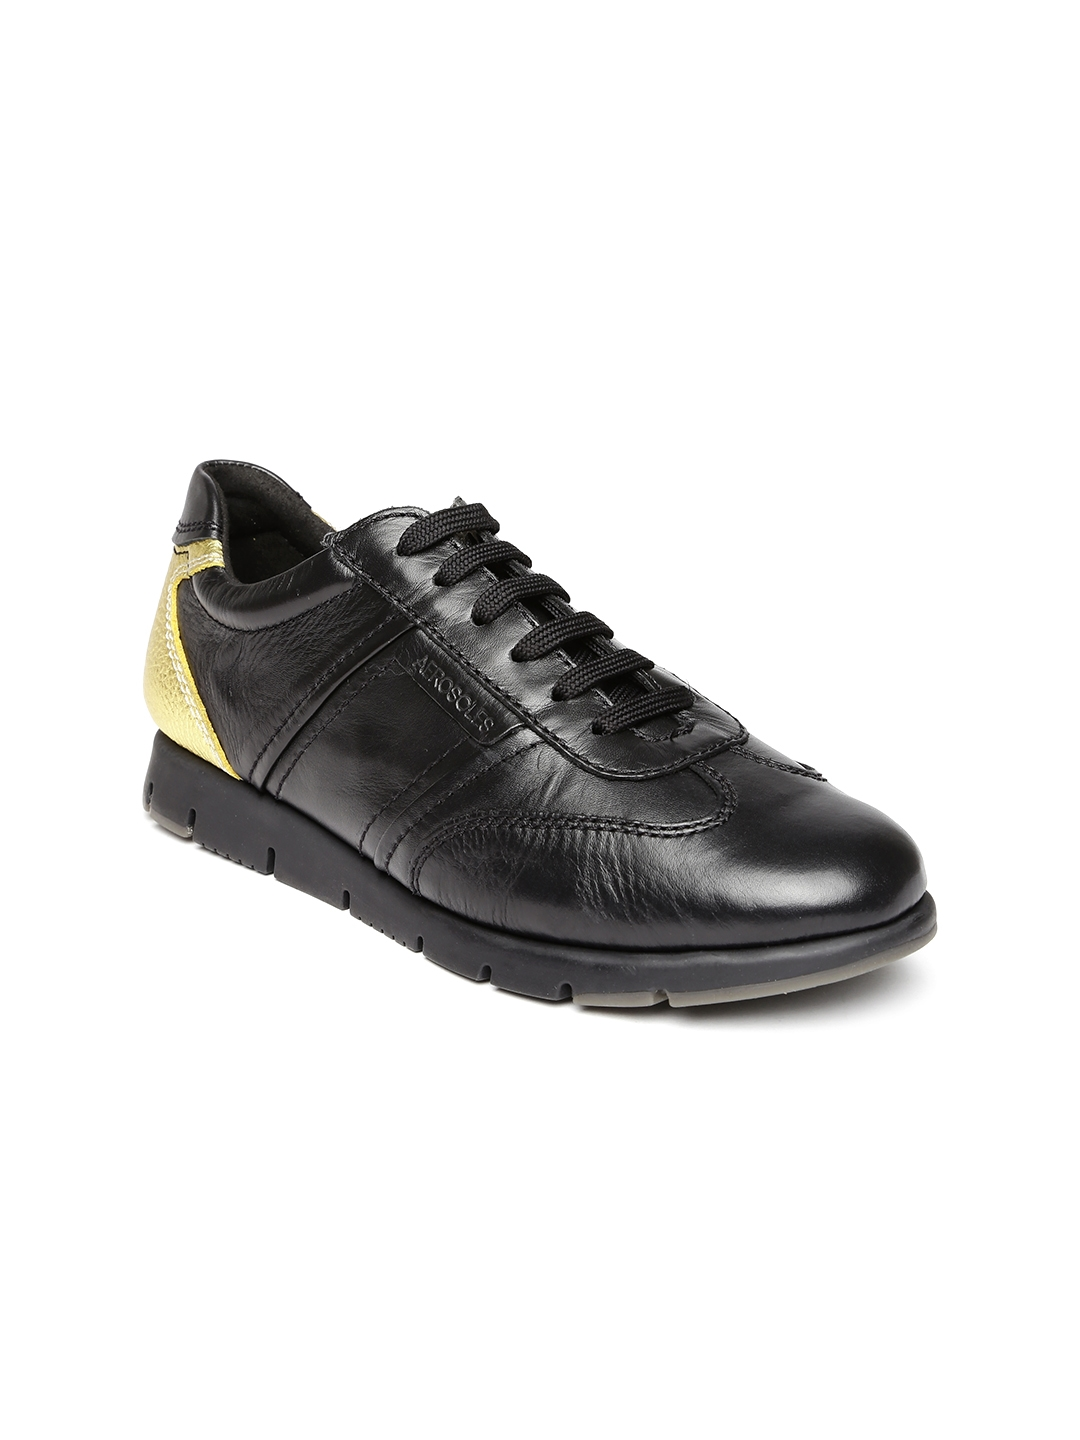 8f4f69b9ffea83 Buy Aerosoles Women Black Solid Leather Sneakers - Casual Shoes for ...